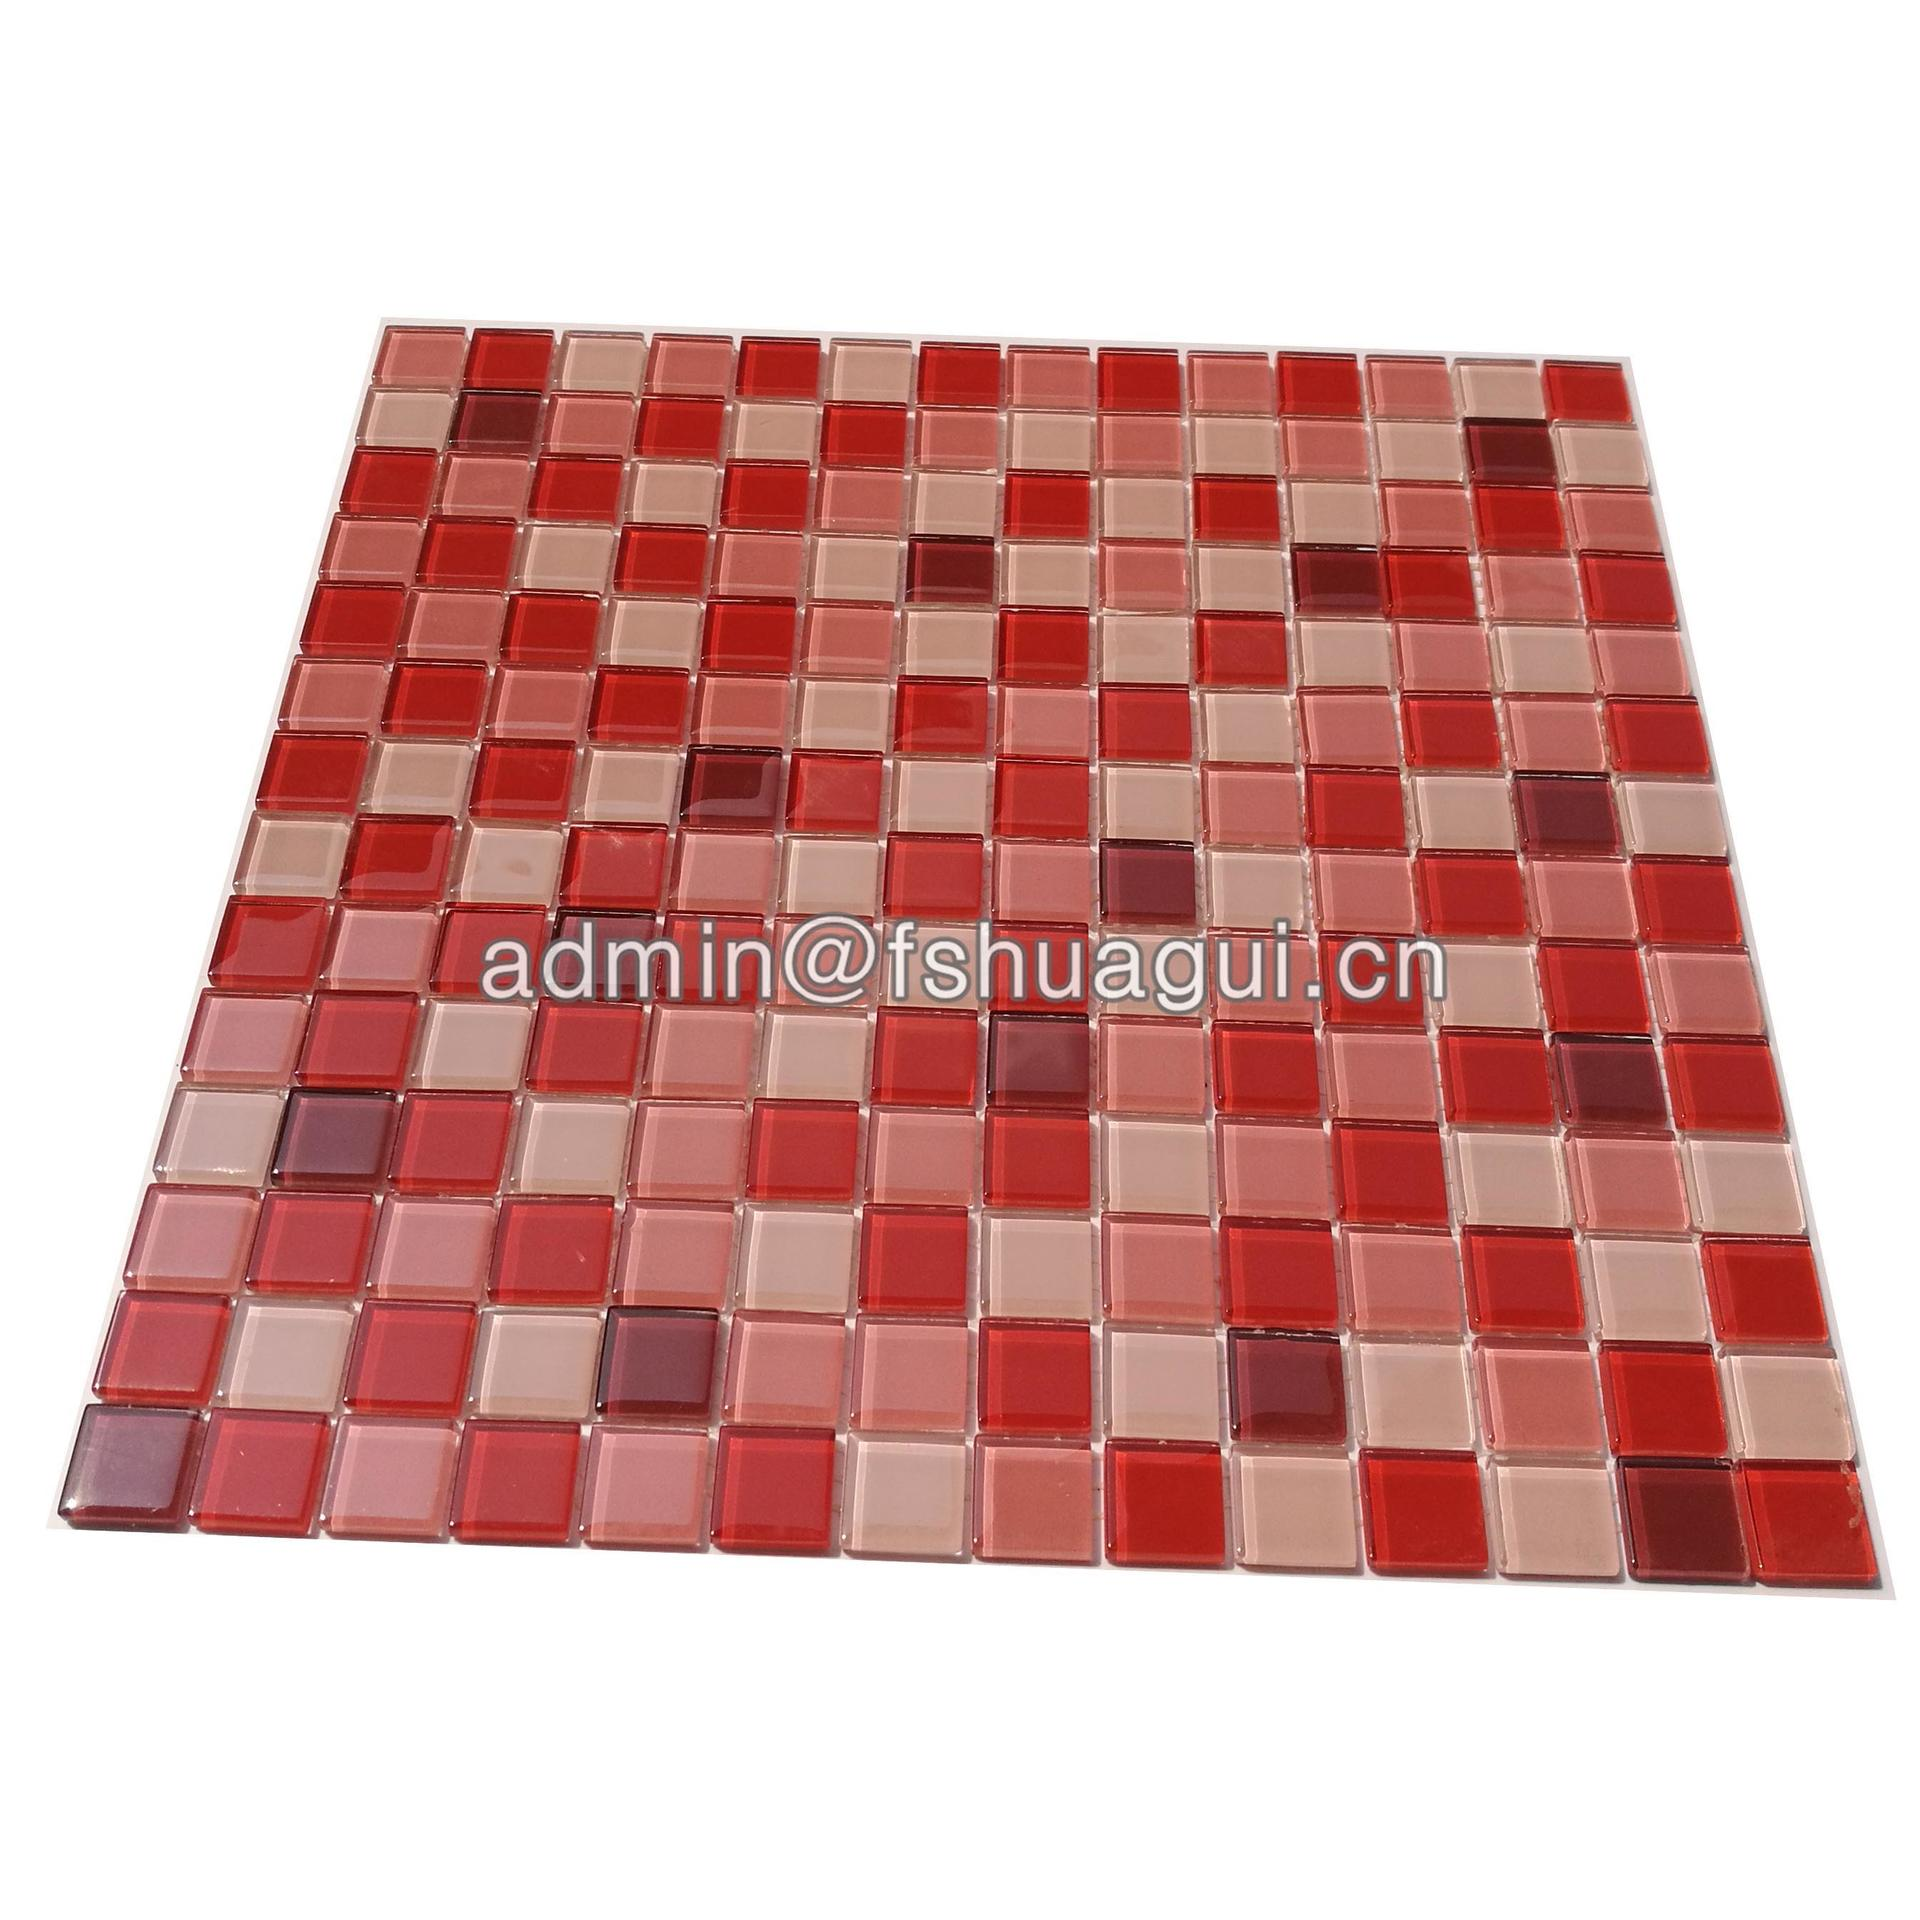 Red color 2cm glass mosaic tiles for kitchen wall HG-KC42001A